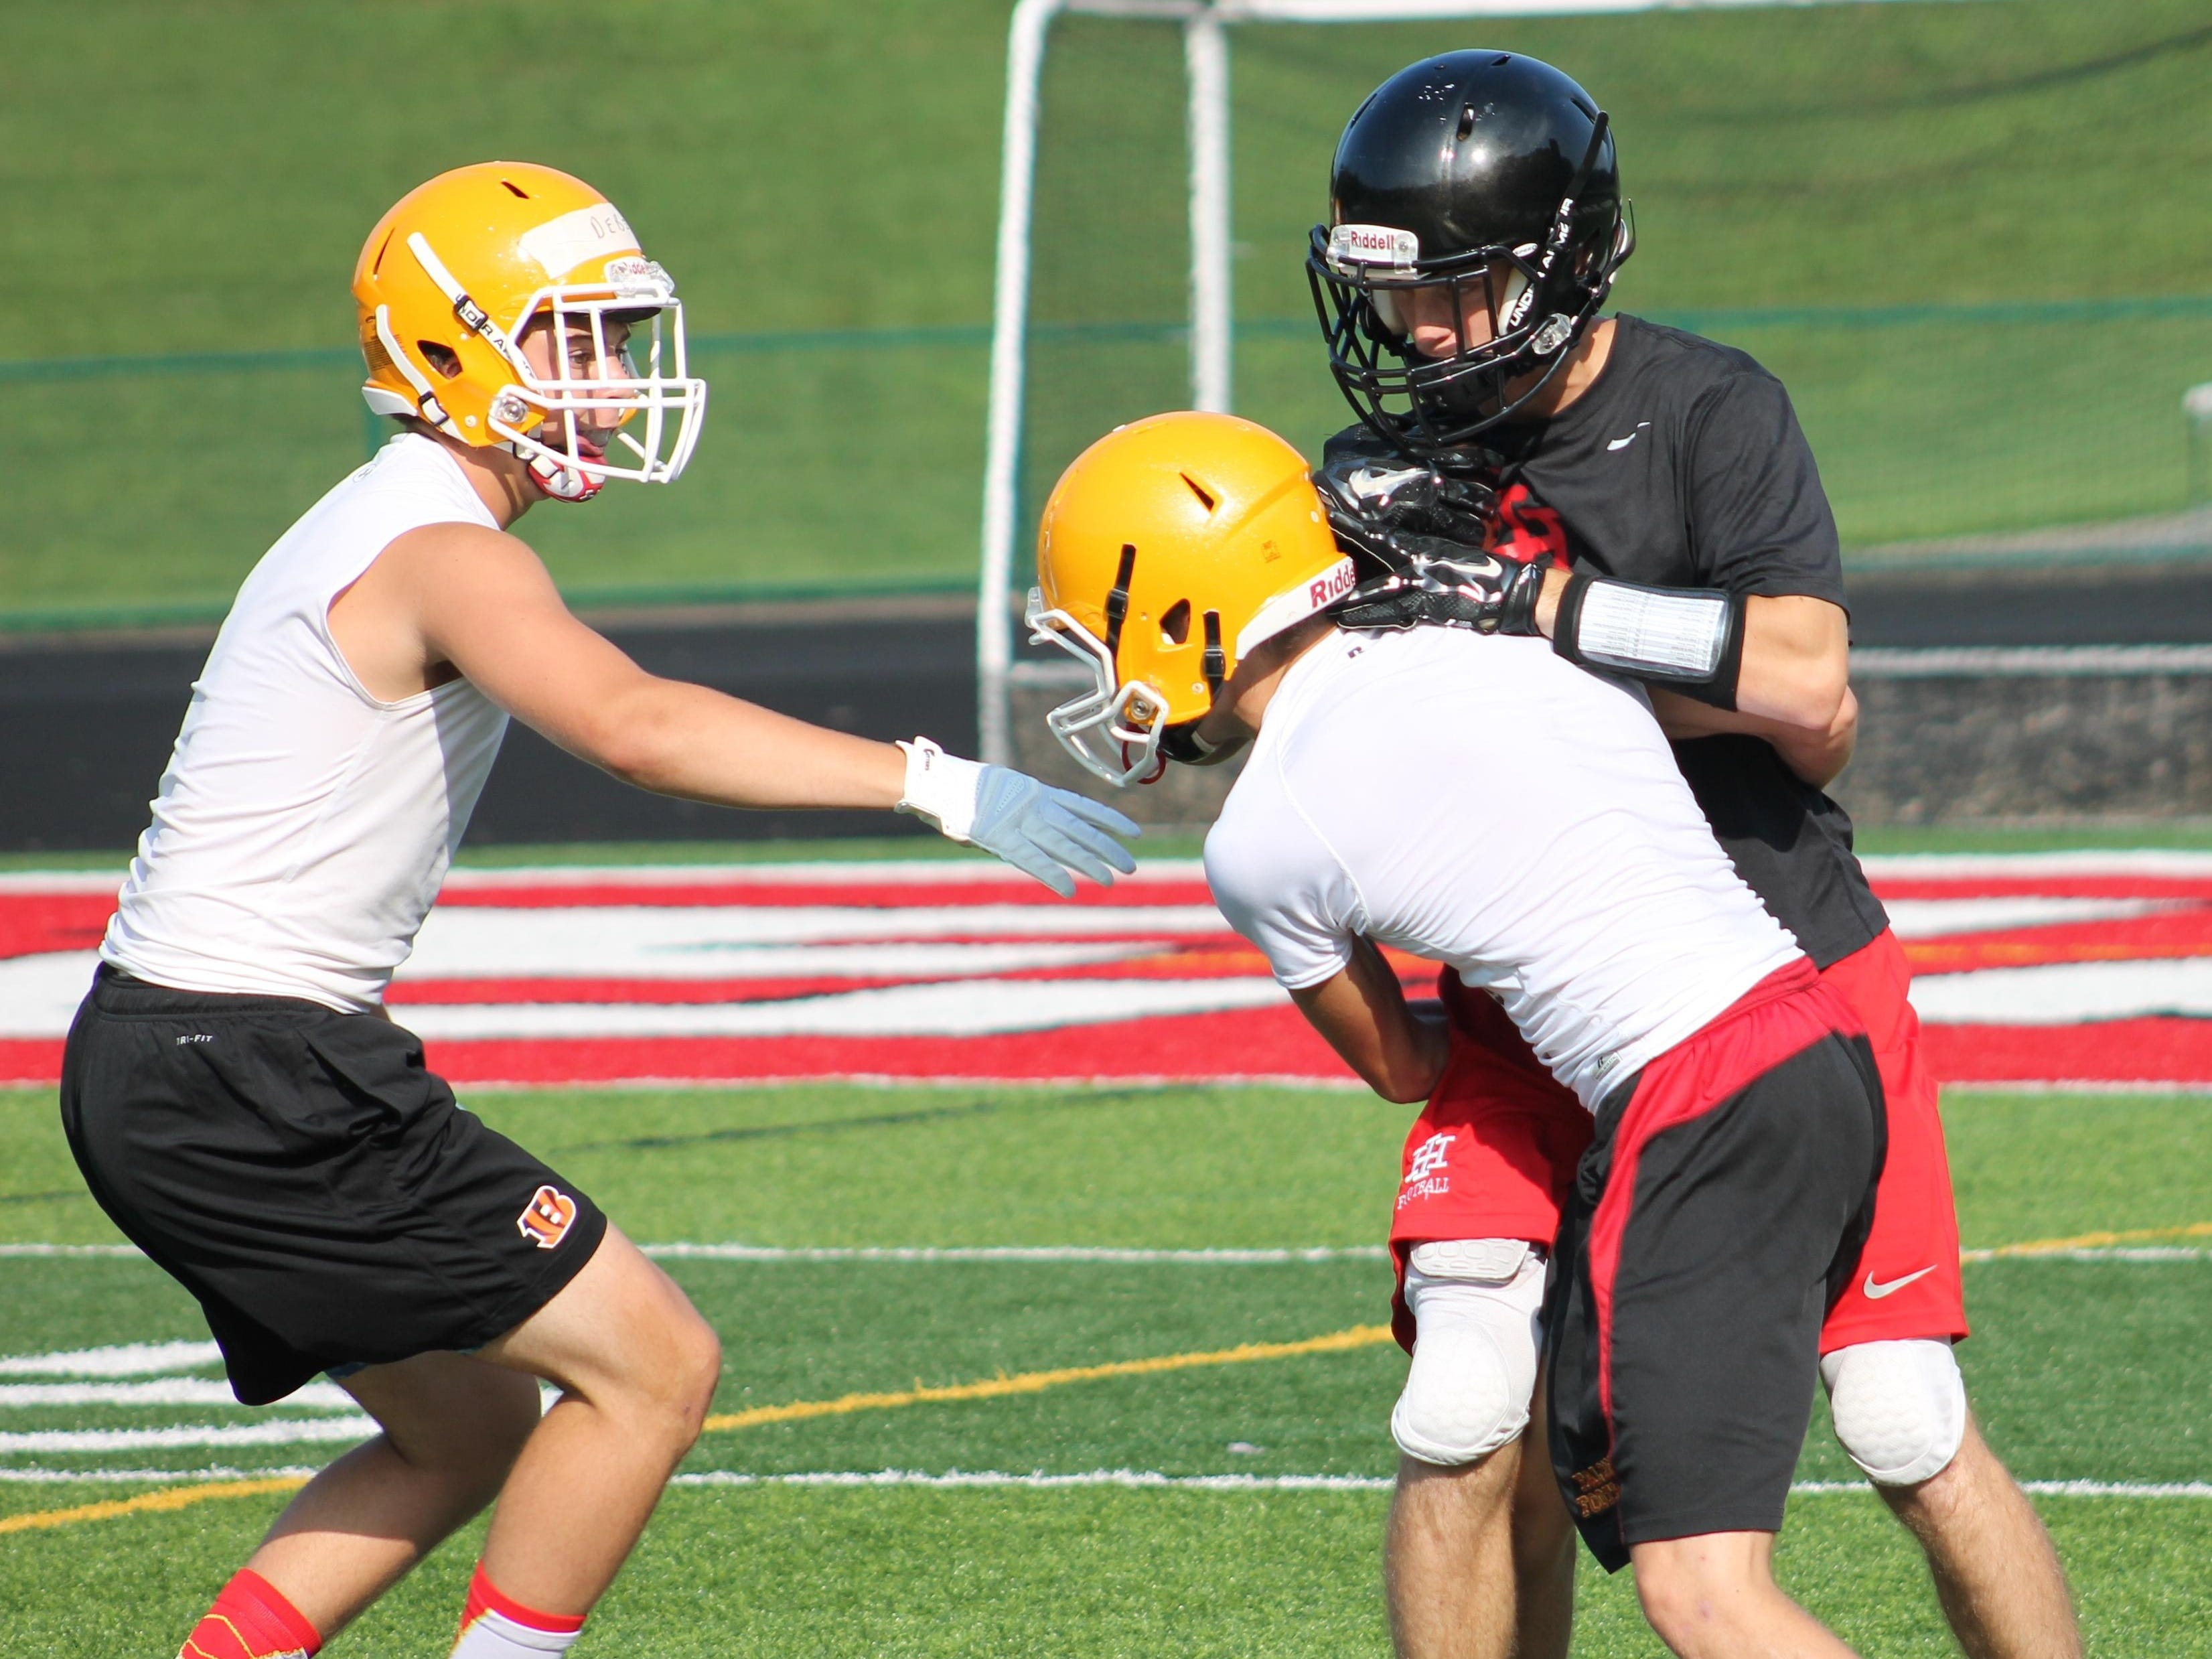 Indian Hill junior Dawson Aichholz comes down with a reception during a 7-on-7 drill with Fenwick.